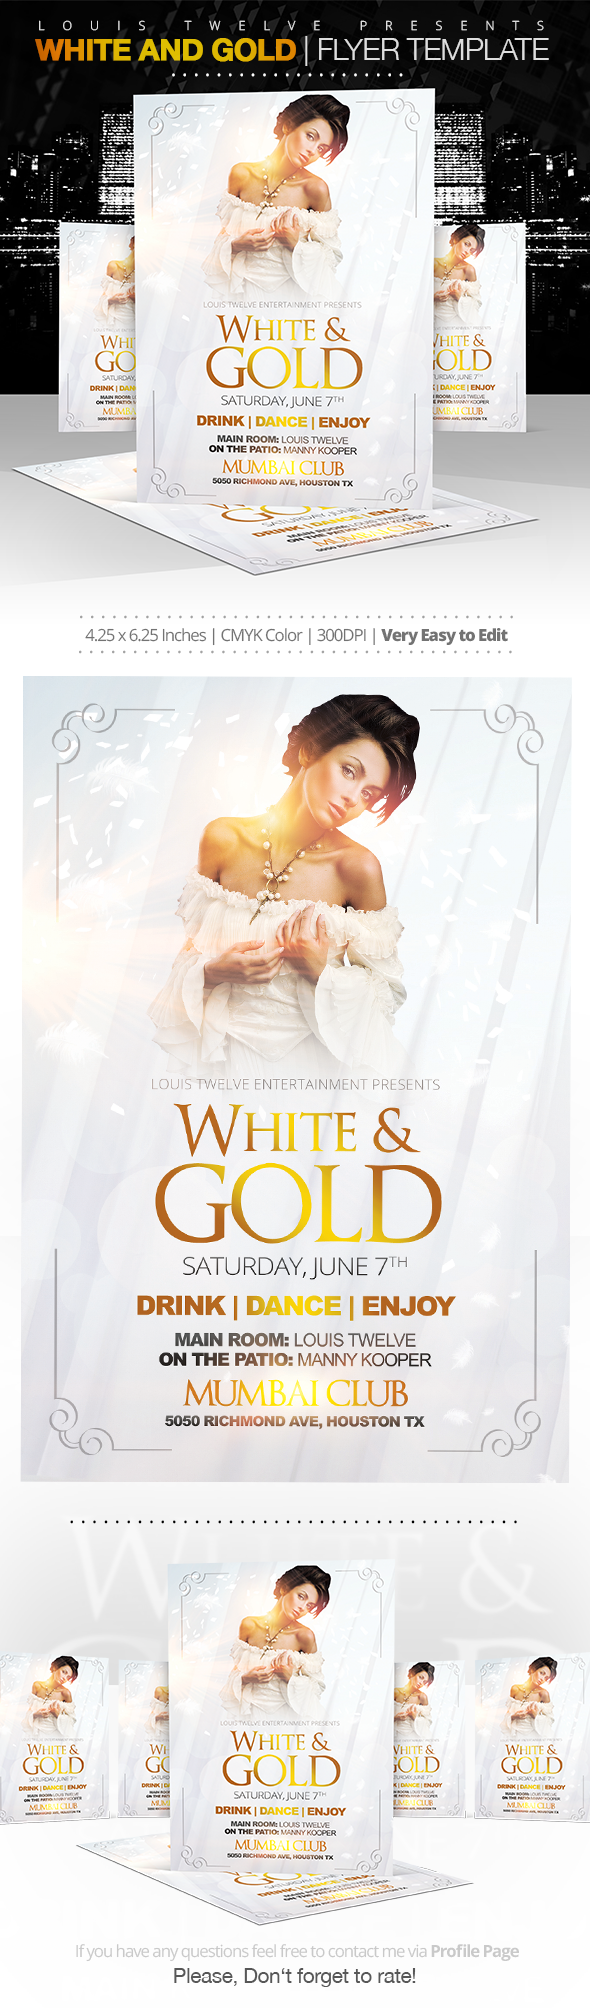 white and gold flyer template on behance